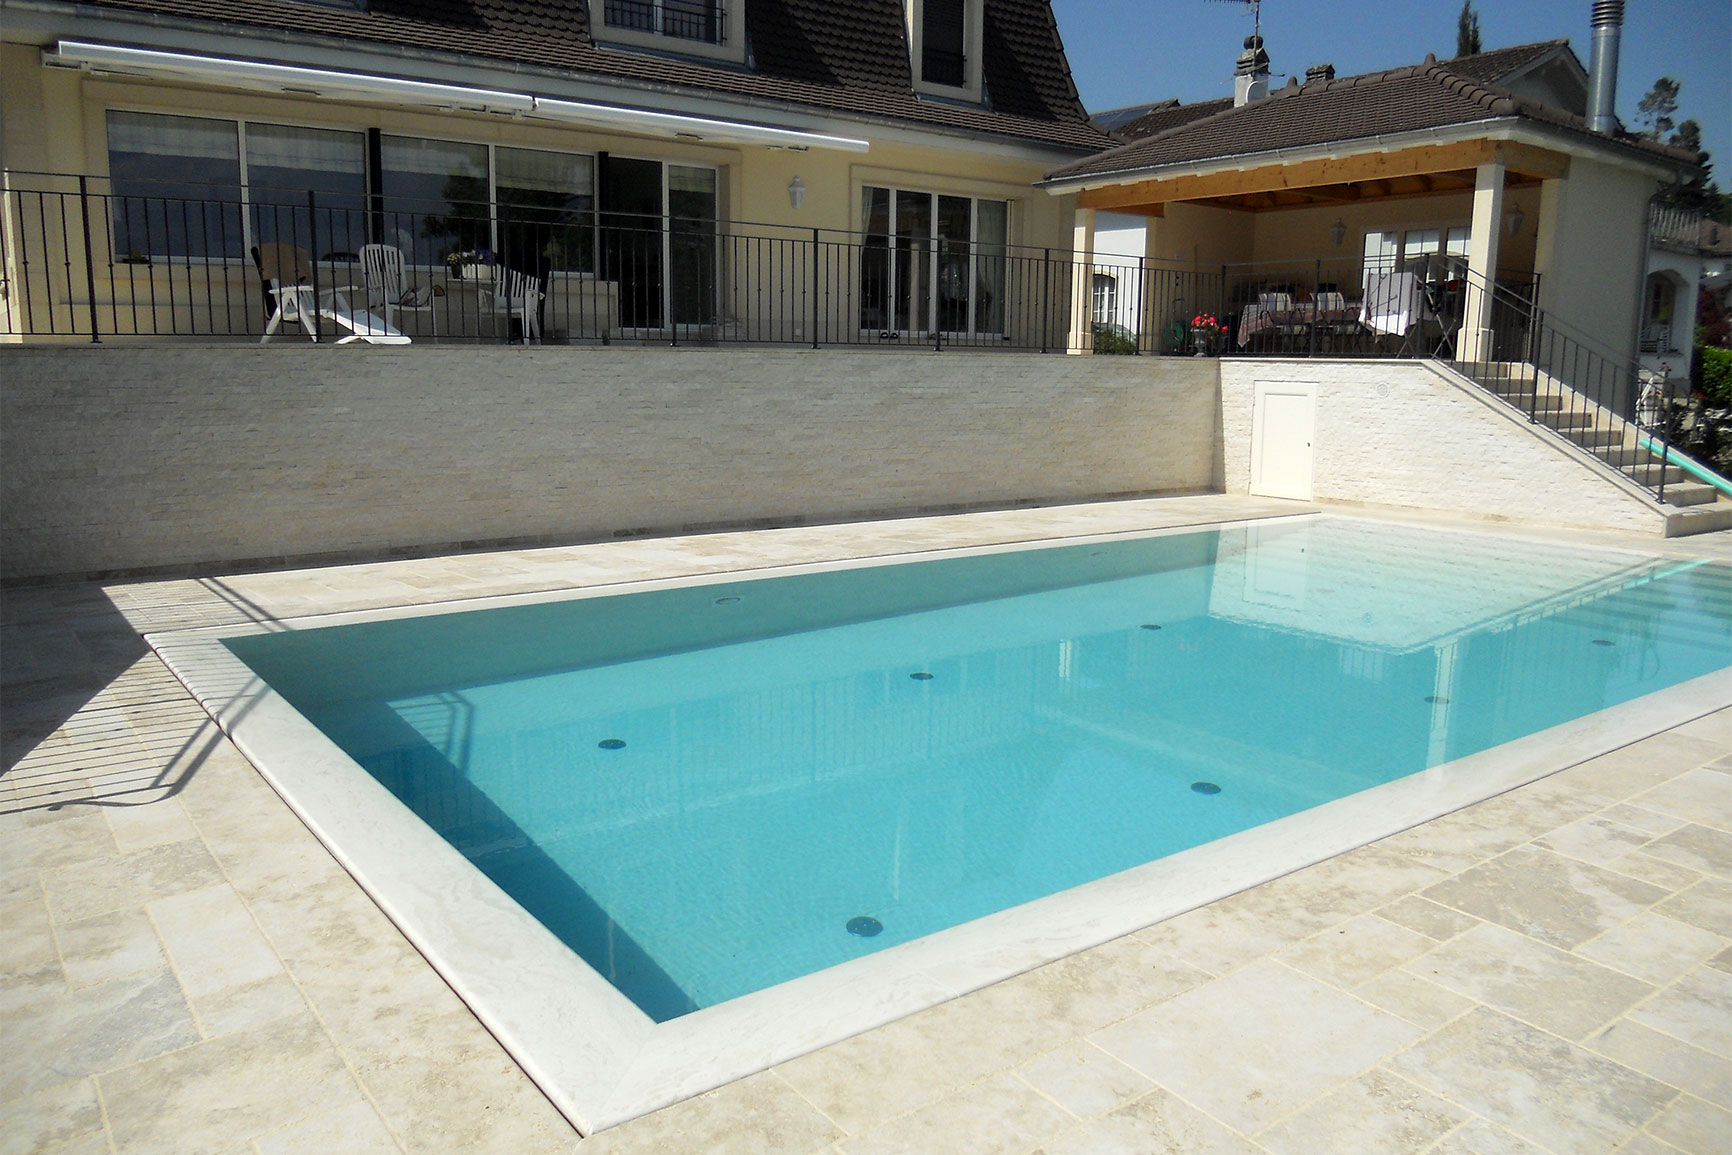 Piscine carrelage et d bordement couverture grando for Piscine miroir fond mobile